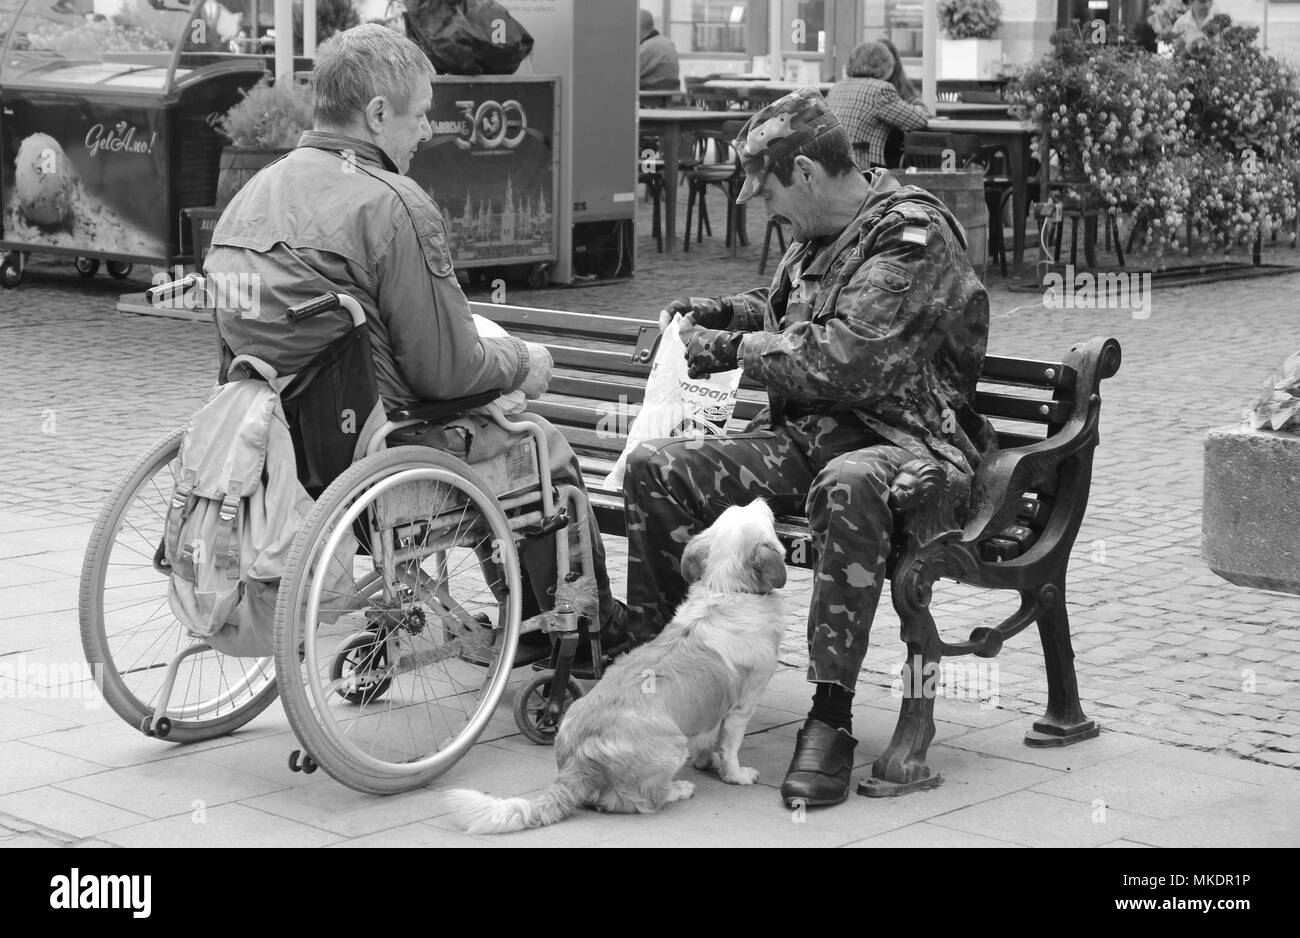 Two Soldiers Share Luch with their Dog - Stock Image